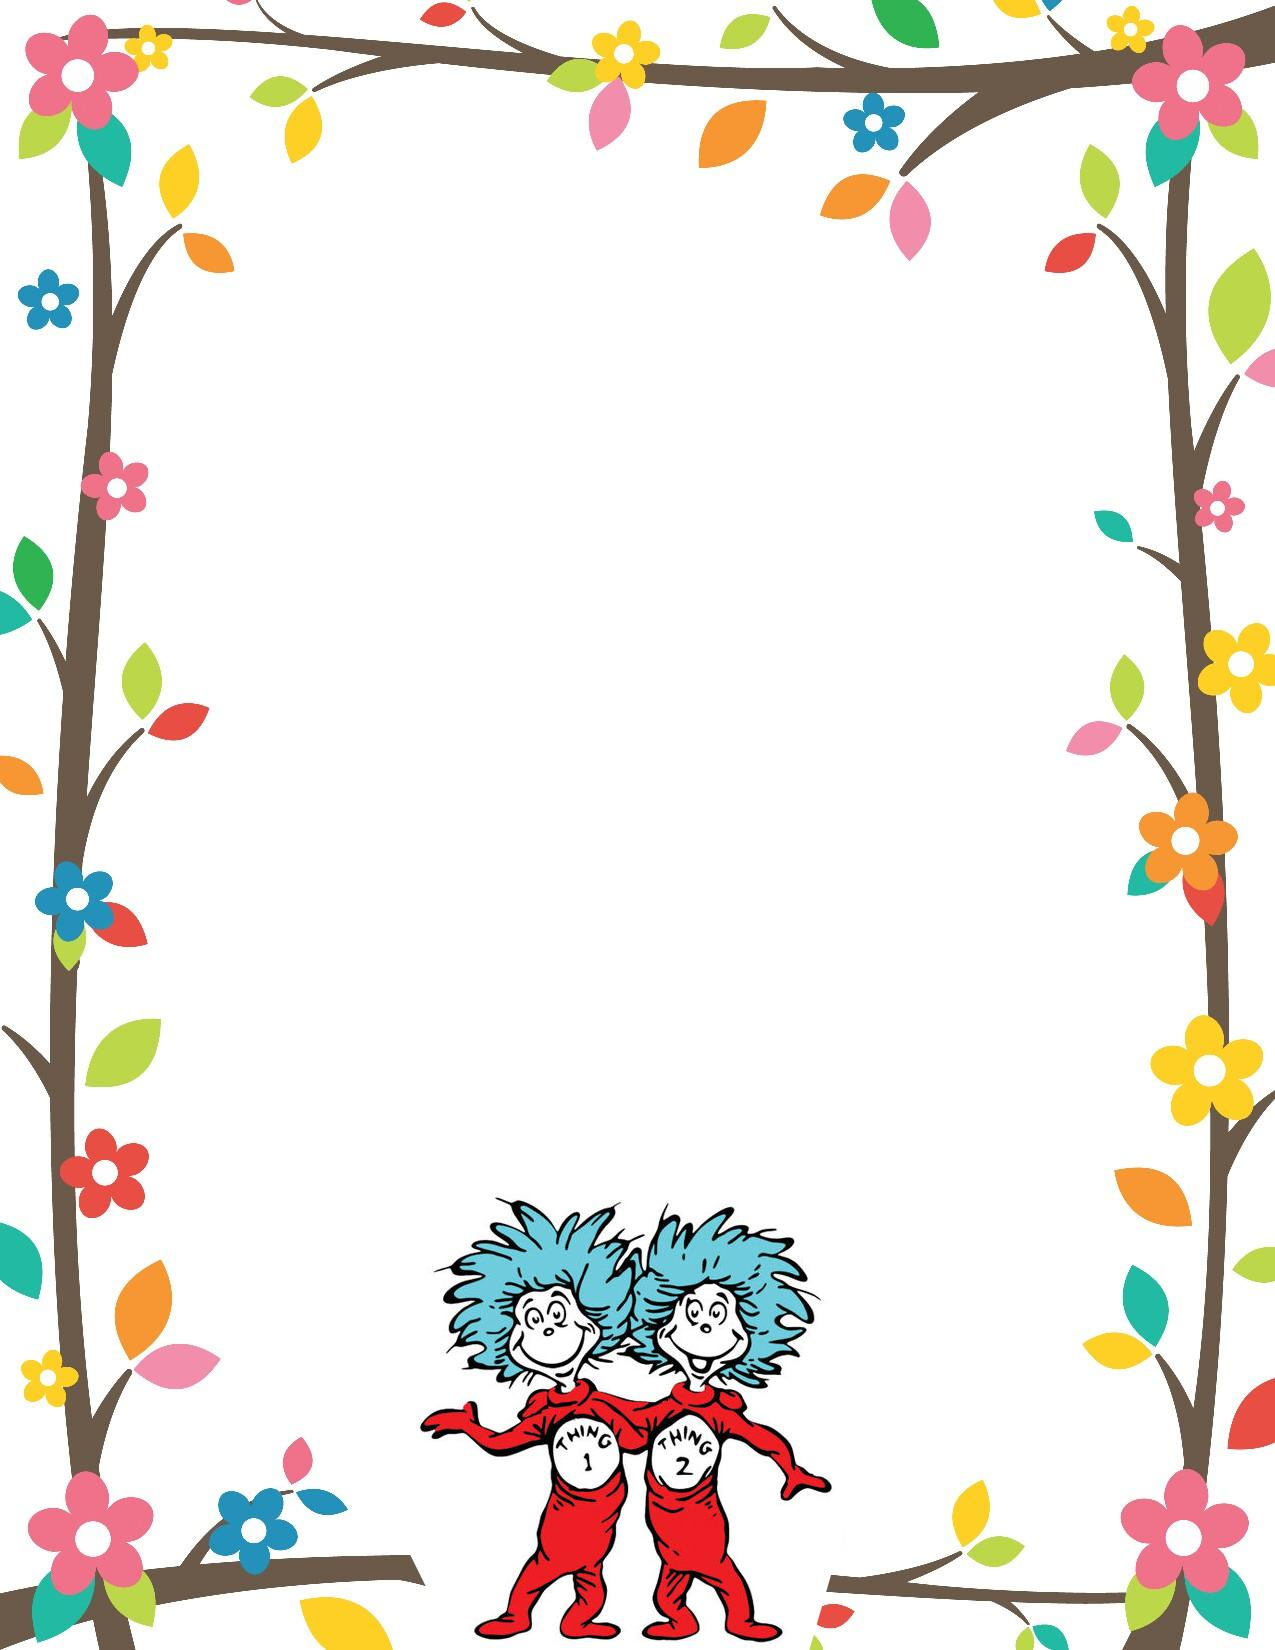 dr seuss border invitation free print Dr. Seuss Quotes Dr. Seuss Quotes